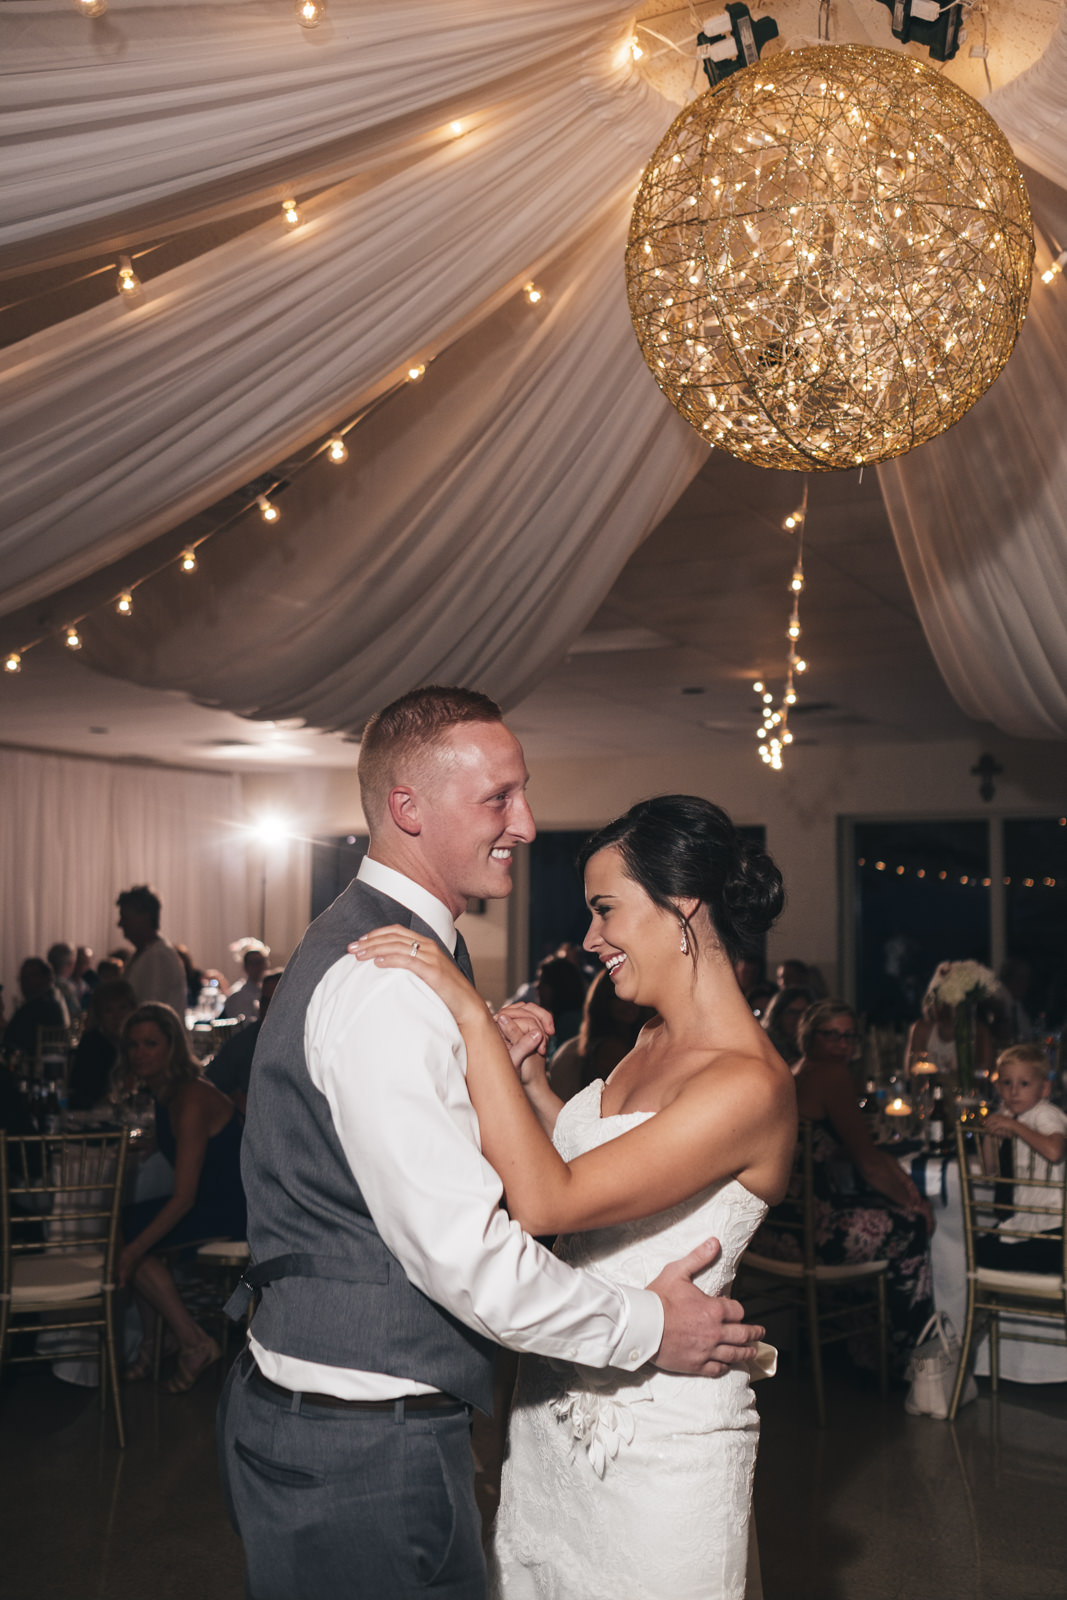 Bride and groom dance their first dance as husband and wife in marblehead, Ohio wedding reception